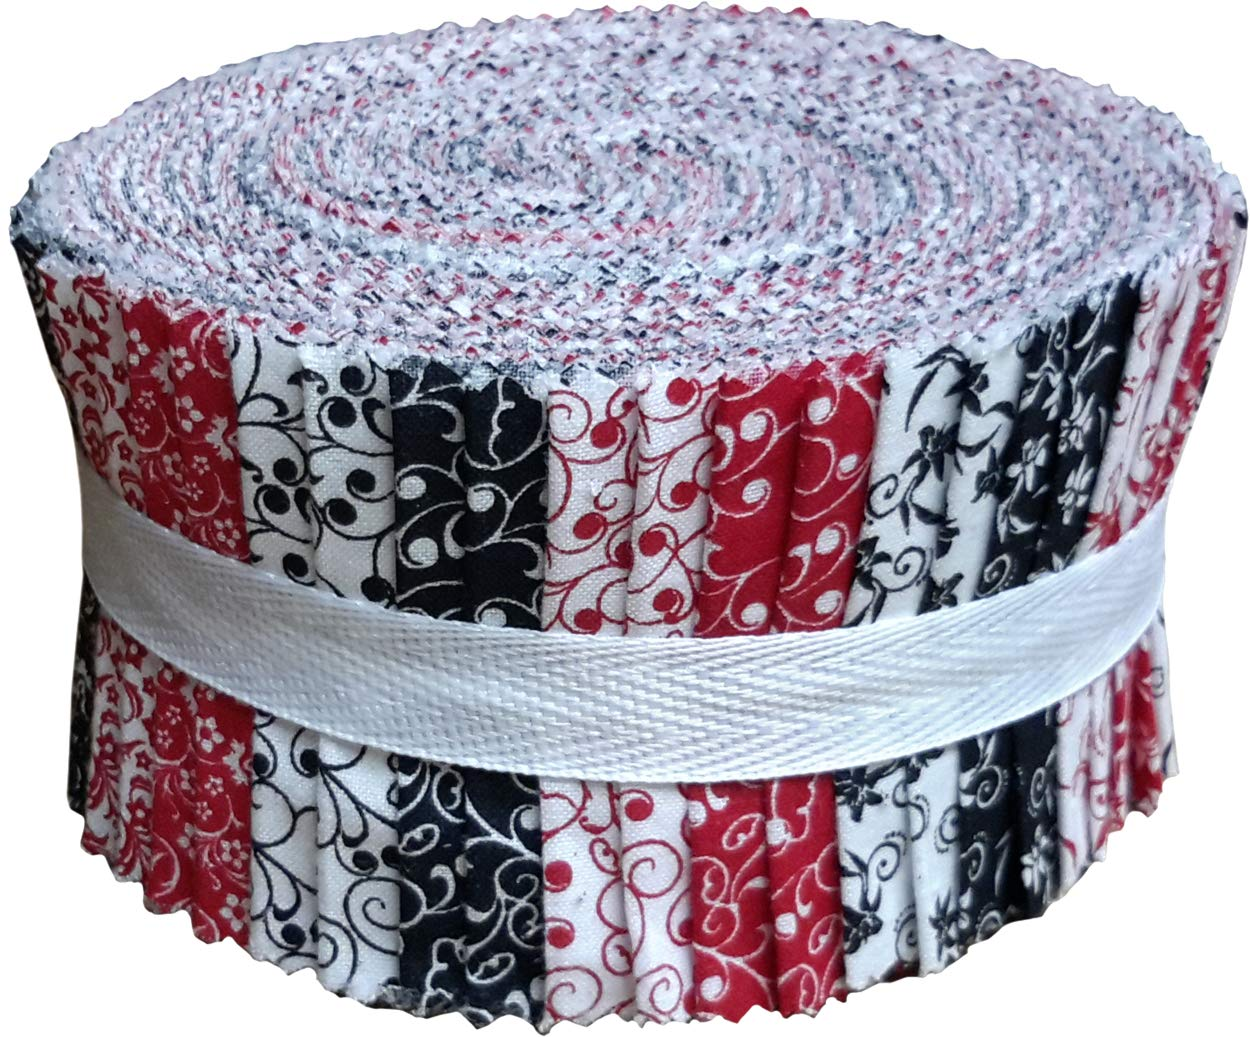 Red Black & White Collection Jelly Roll 40 Precut 2.5-inch Quilting Fabric Strips by Santee